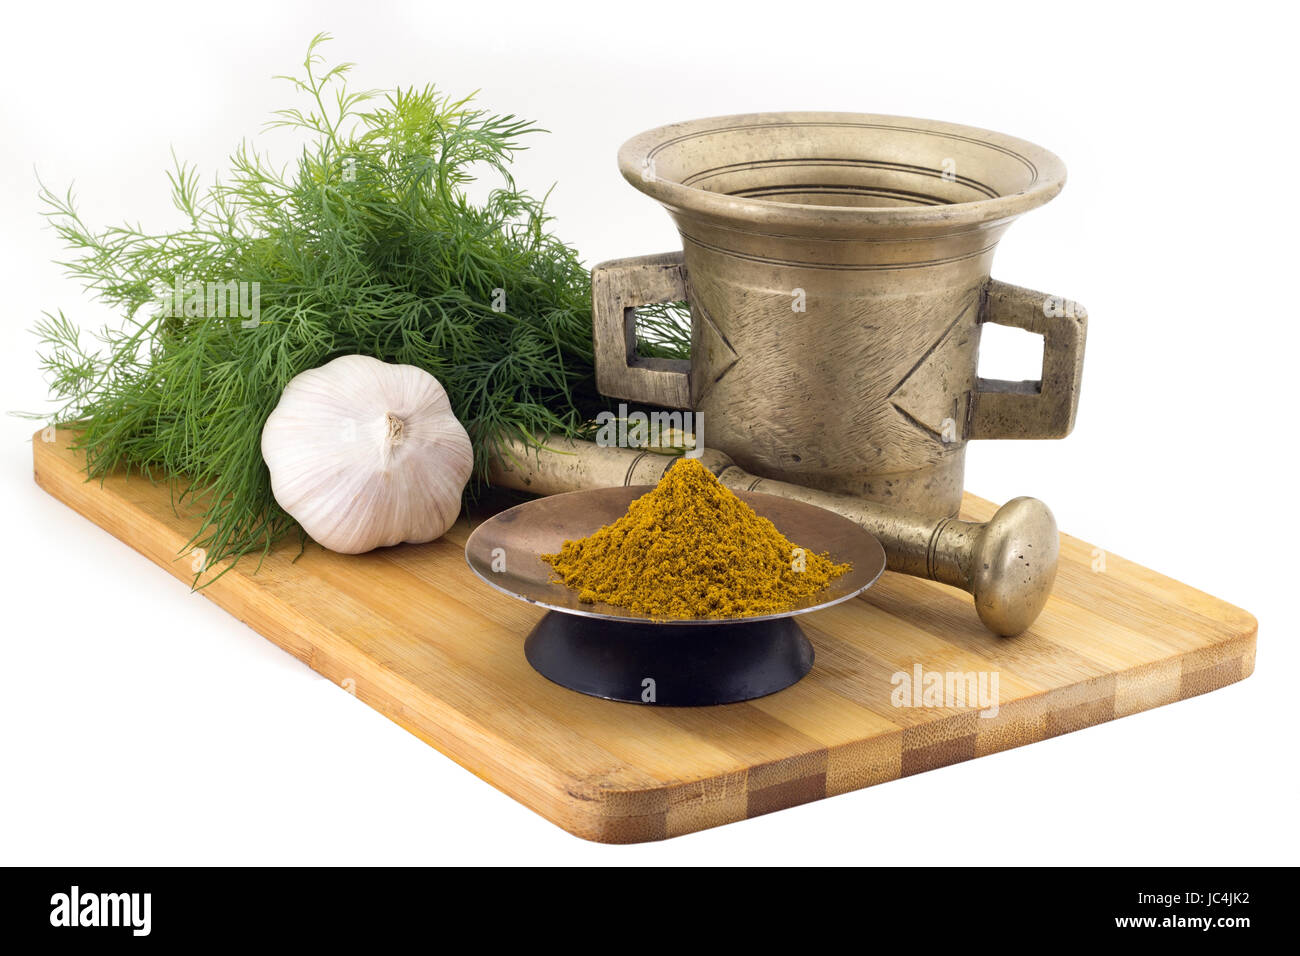 Still Life Spices,Kari spice mix ,marigold staminas in a copper vase on a wooden board on a background of a stern - Stock Image